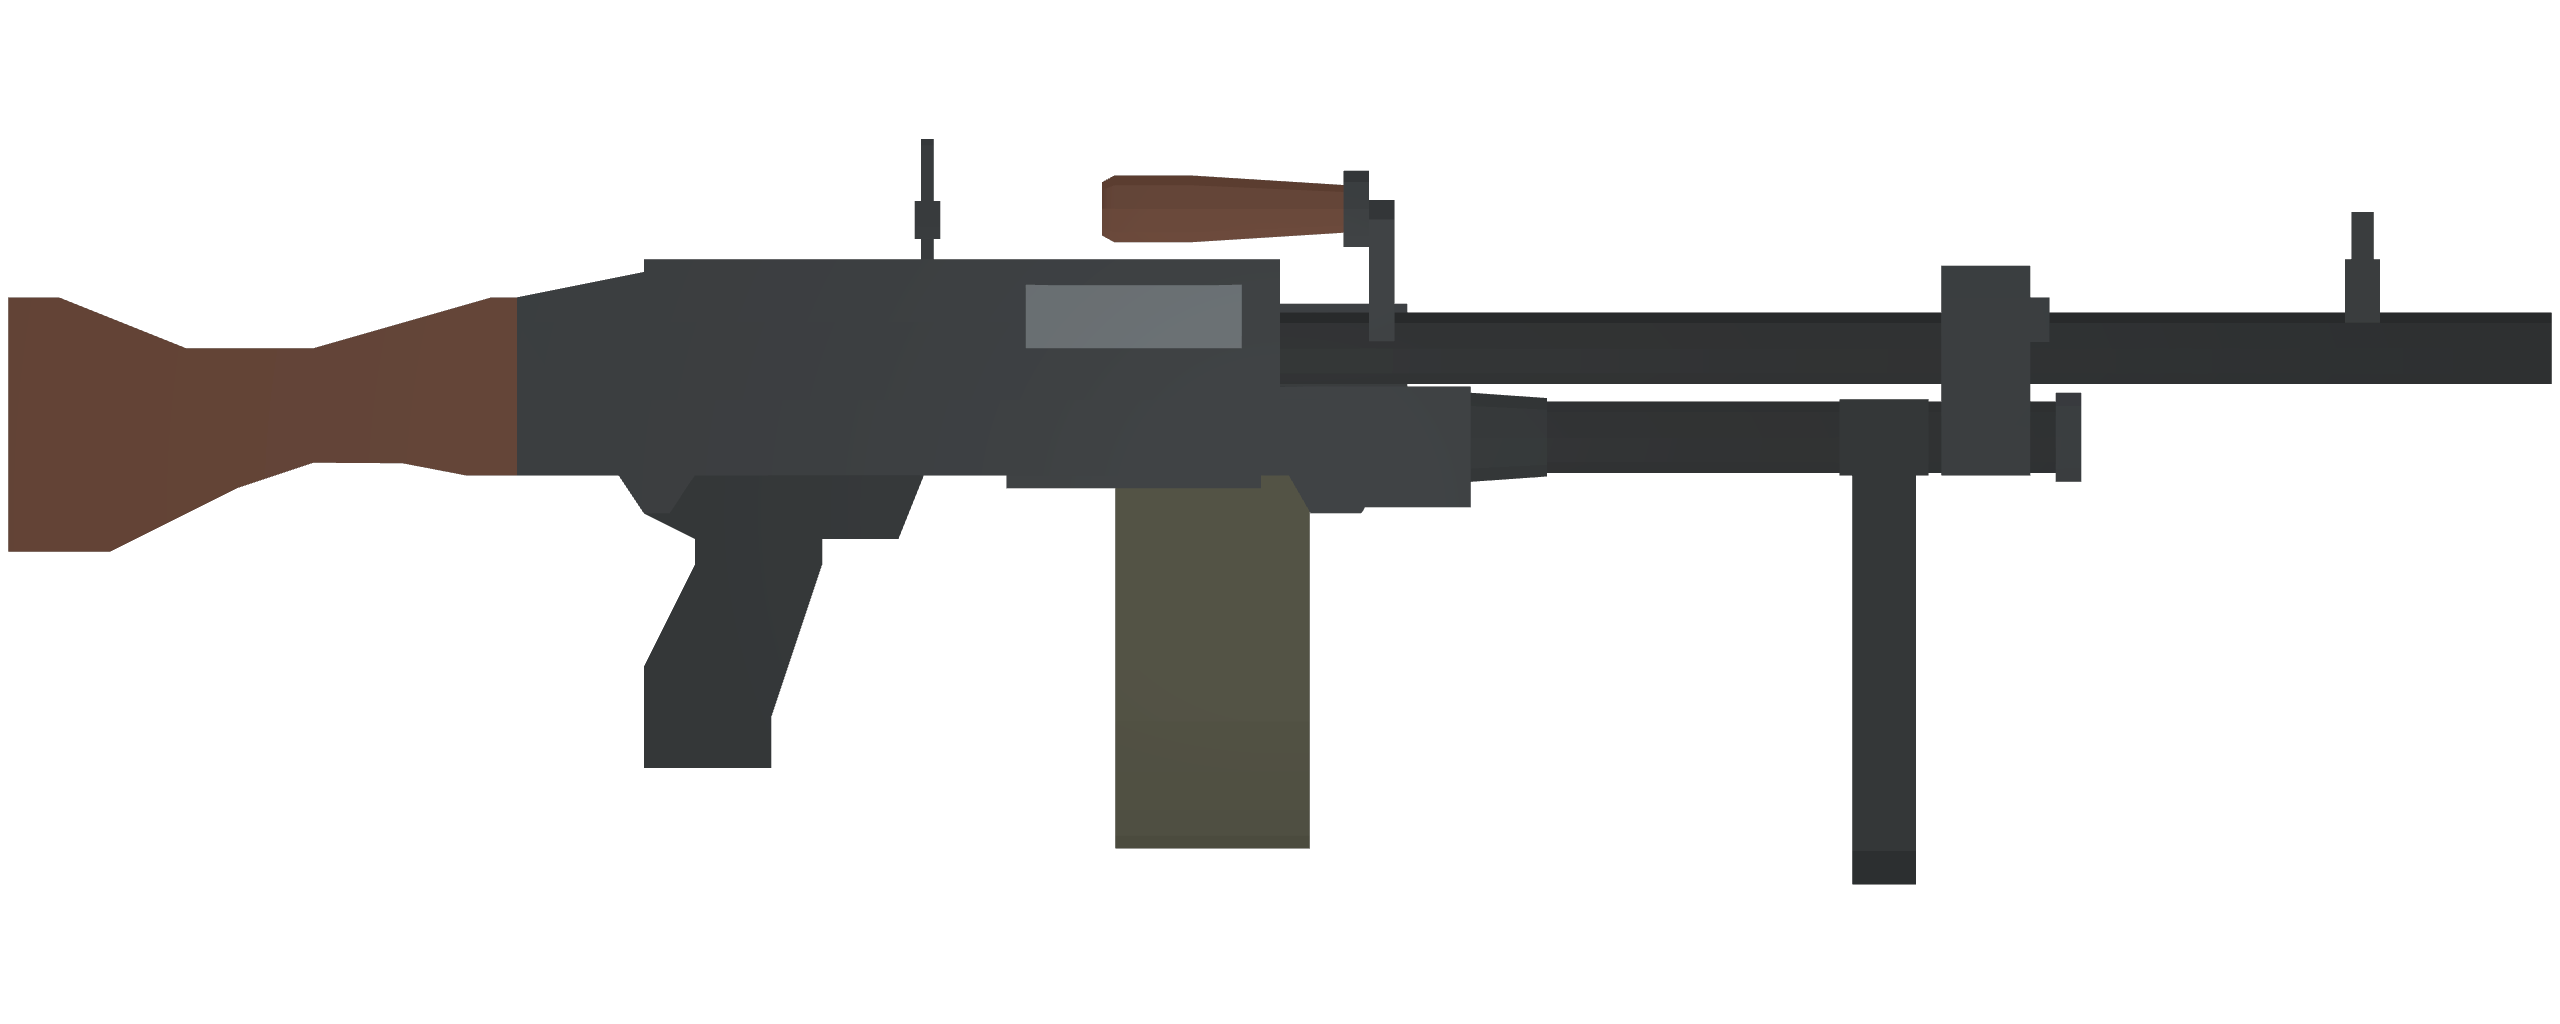 Unturned Uncreated Warfare Mods & All ID List + Attachments - Neutral Weapons - 3BE5D86